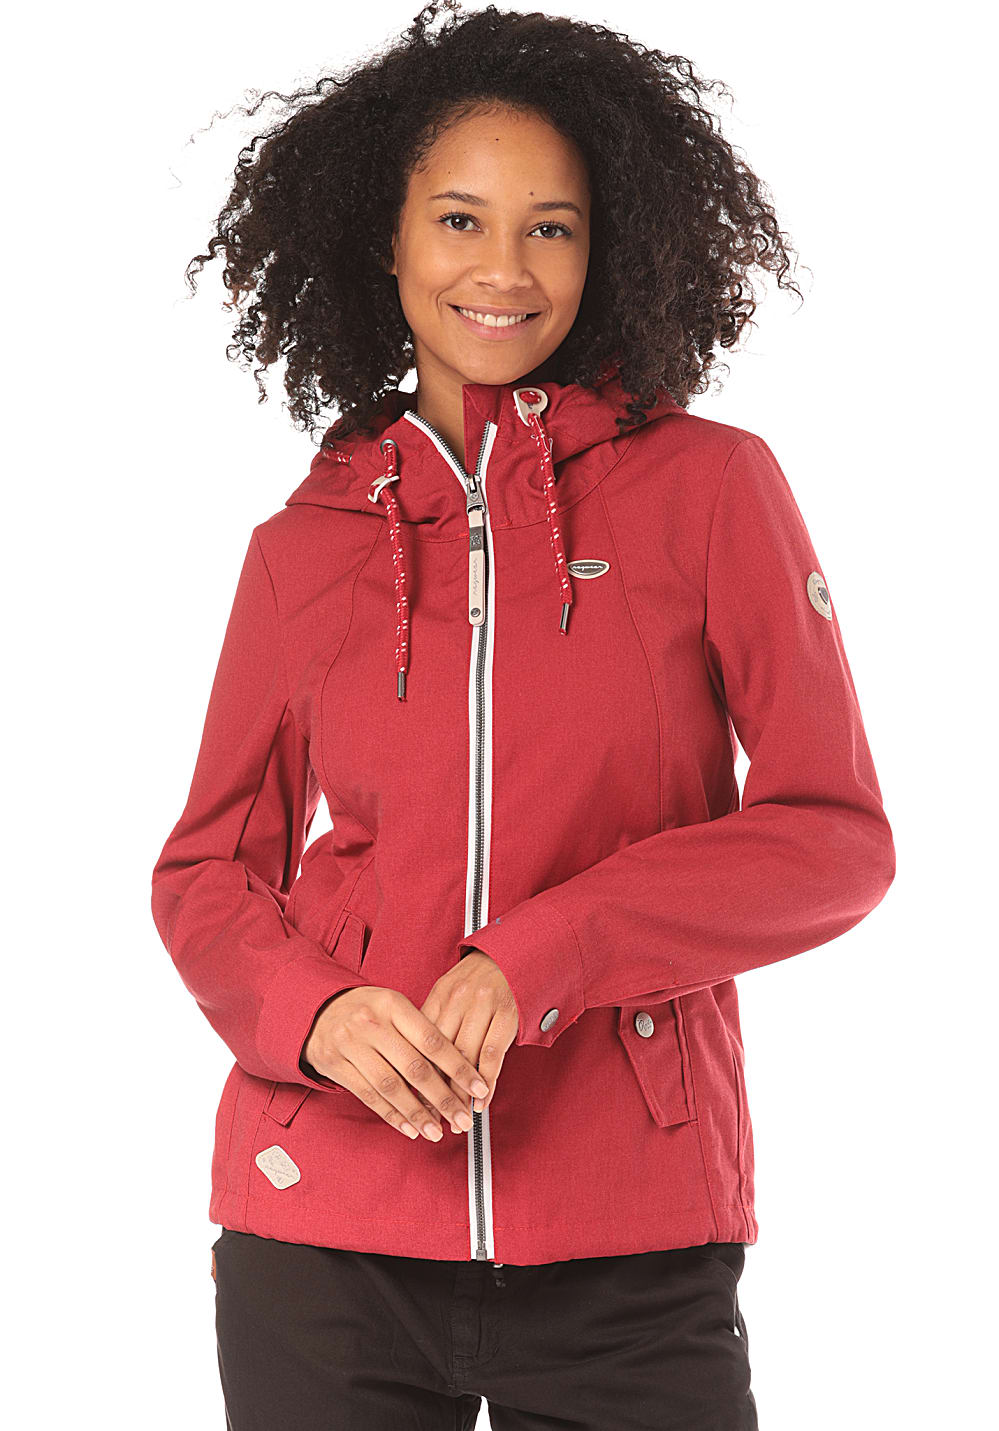 Jacken - ragwear Monade Jacke für Damen Rot  - Onlineshop Planet Sports